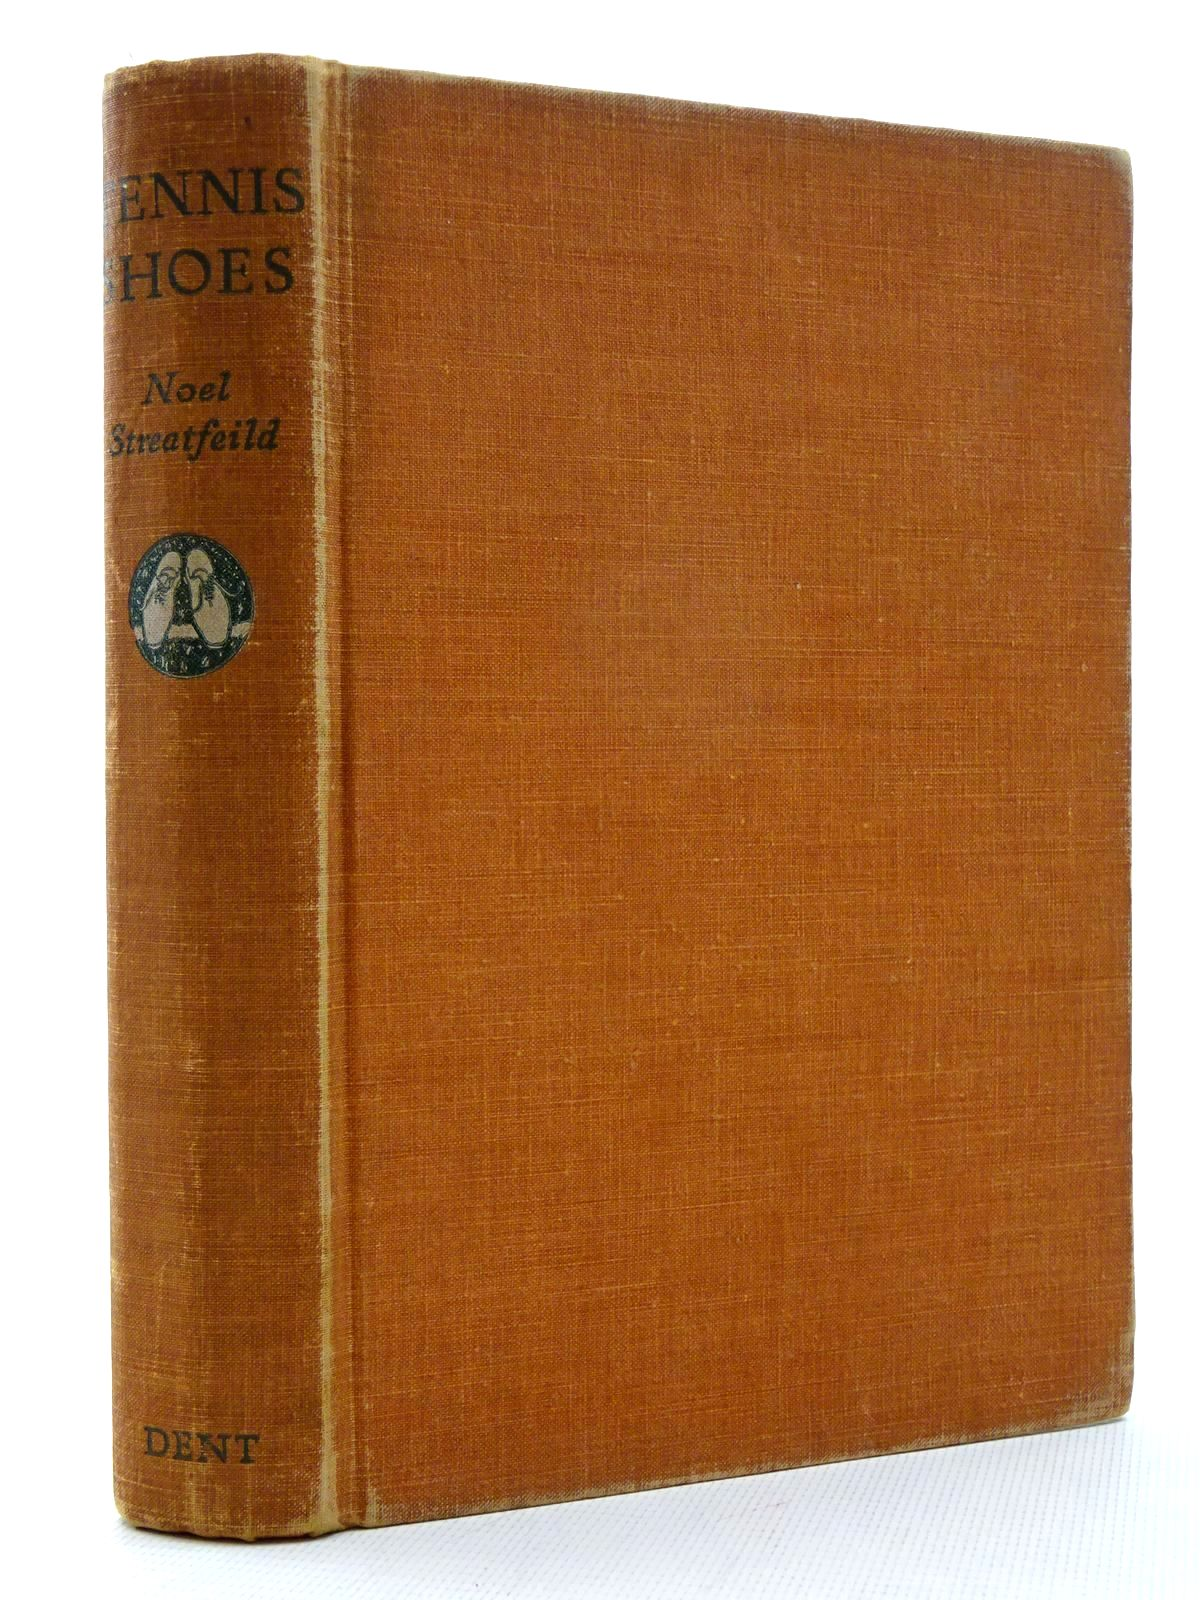 Photo of TENNIS SHOES written by Streatfeild, Noel illustrated by Mays, D.L. published by J.M. Dent & Sons Ltd. (STOCK CODE: 2125068)  for sale by Stella & Rose's Books